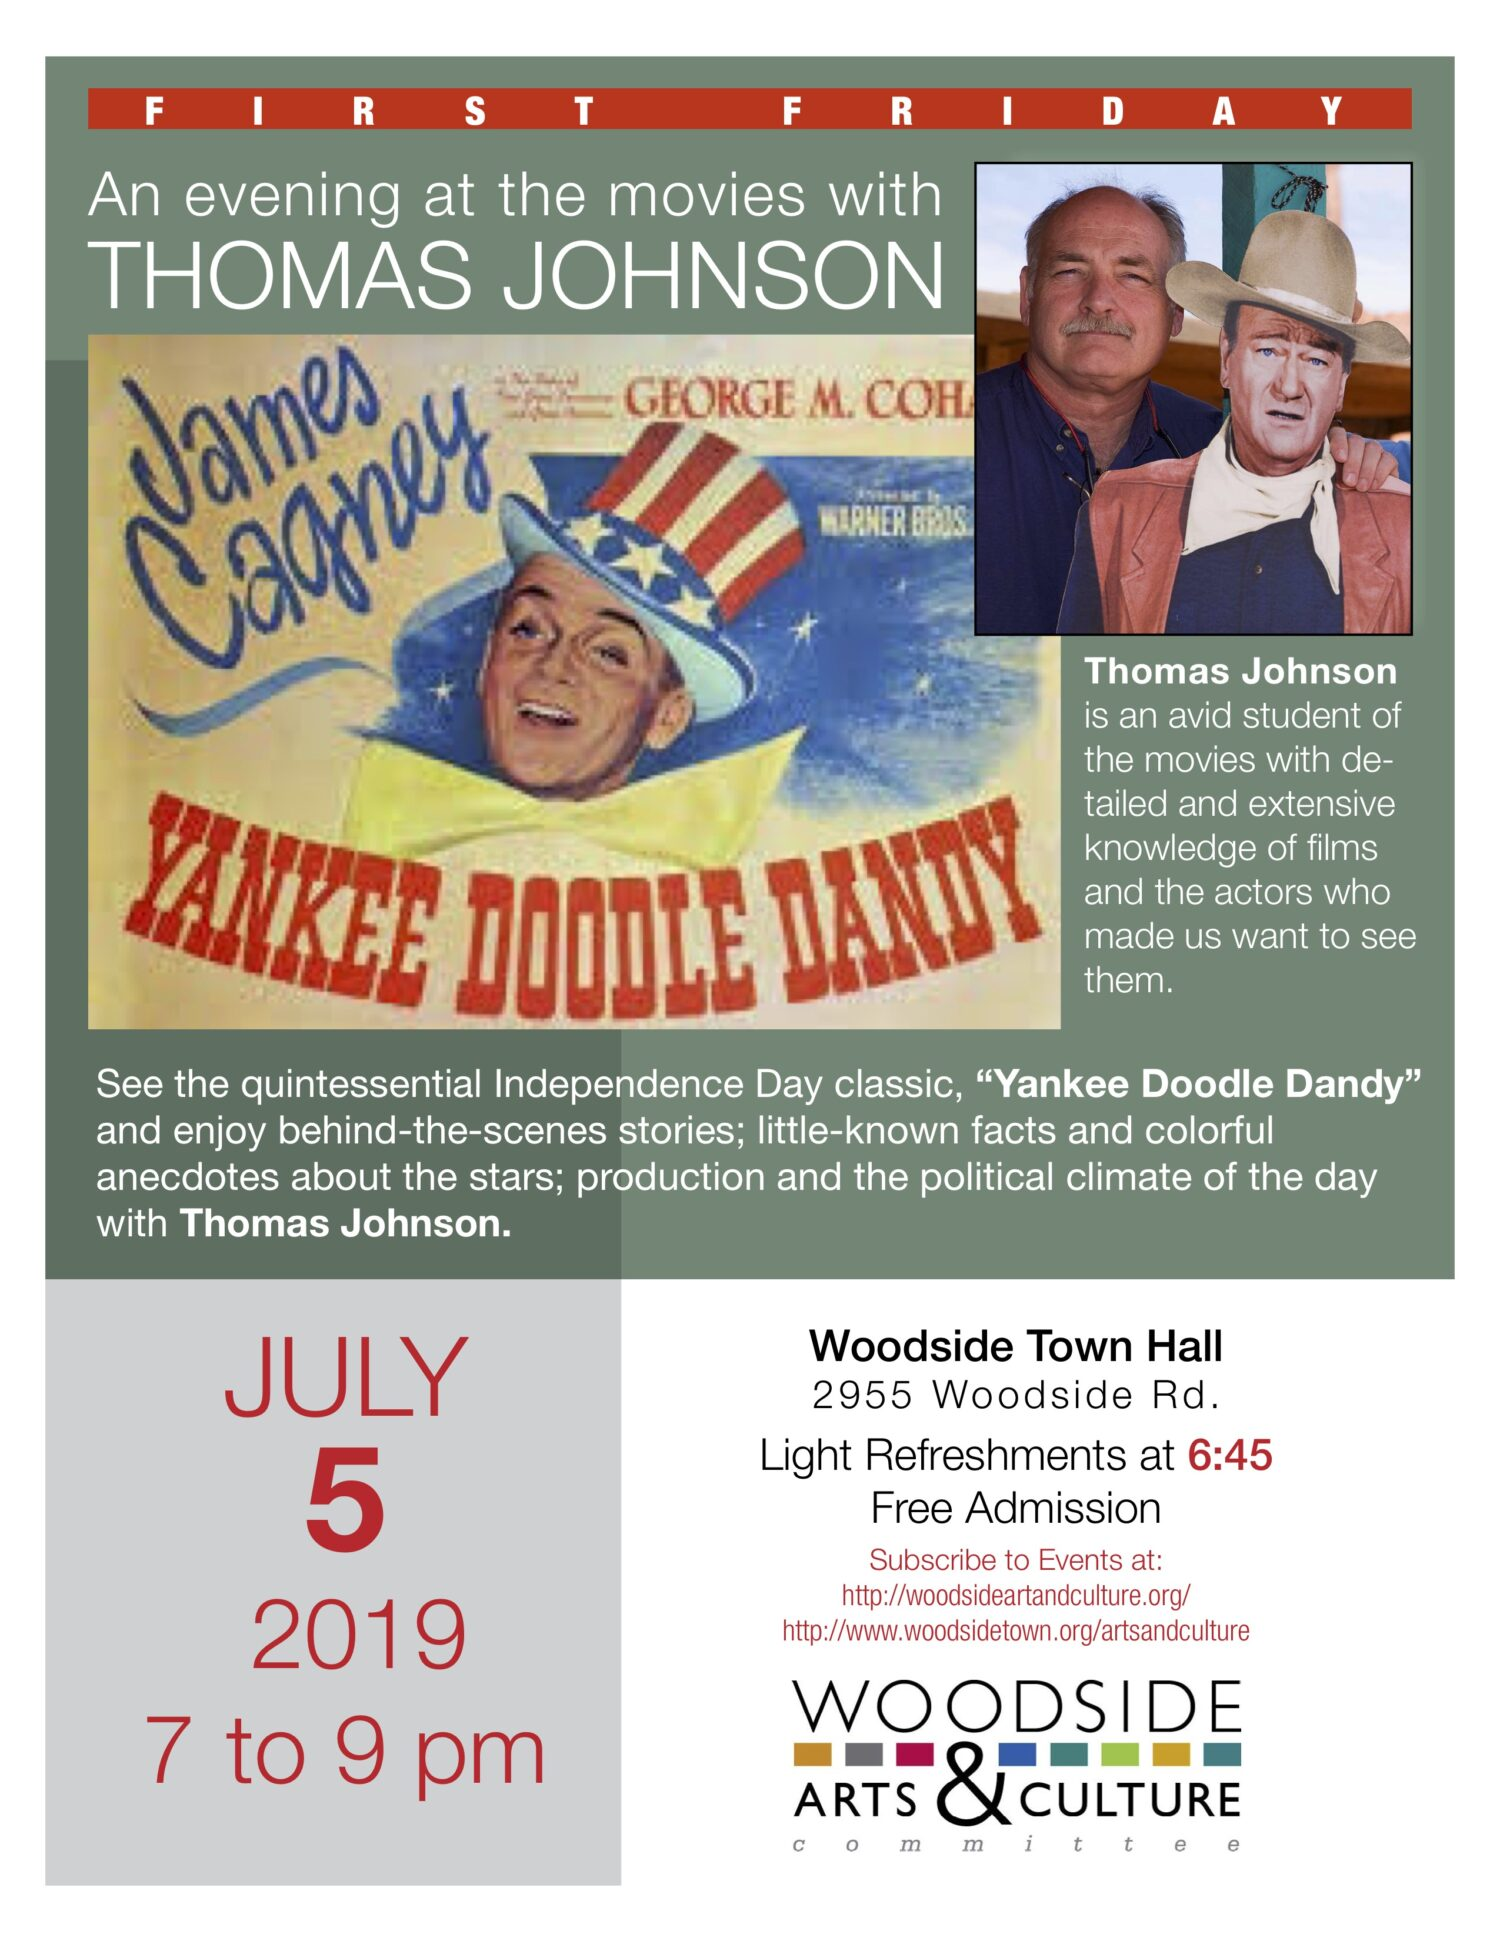 An evening at the movies with THOMAS JOHNSON